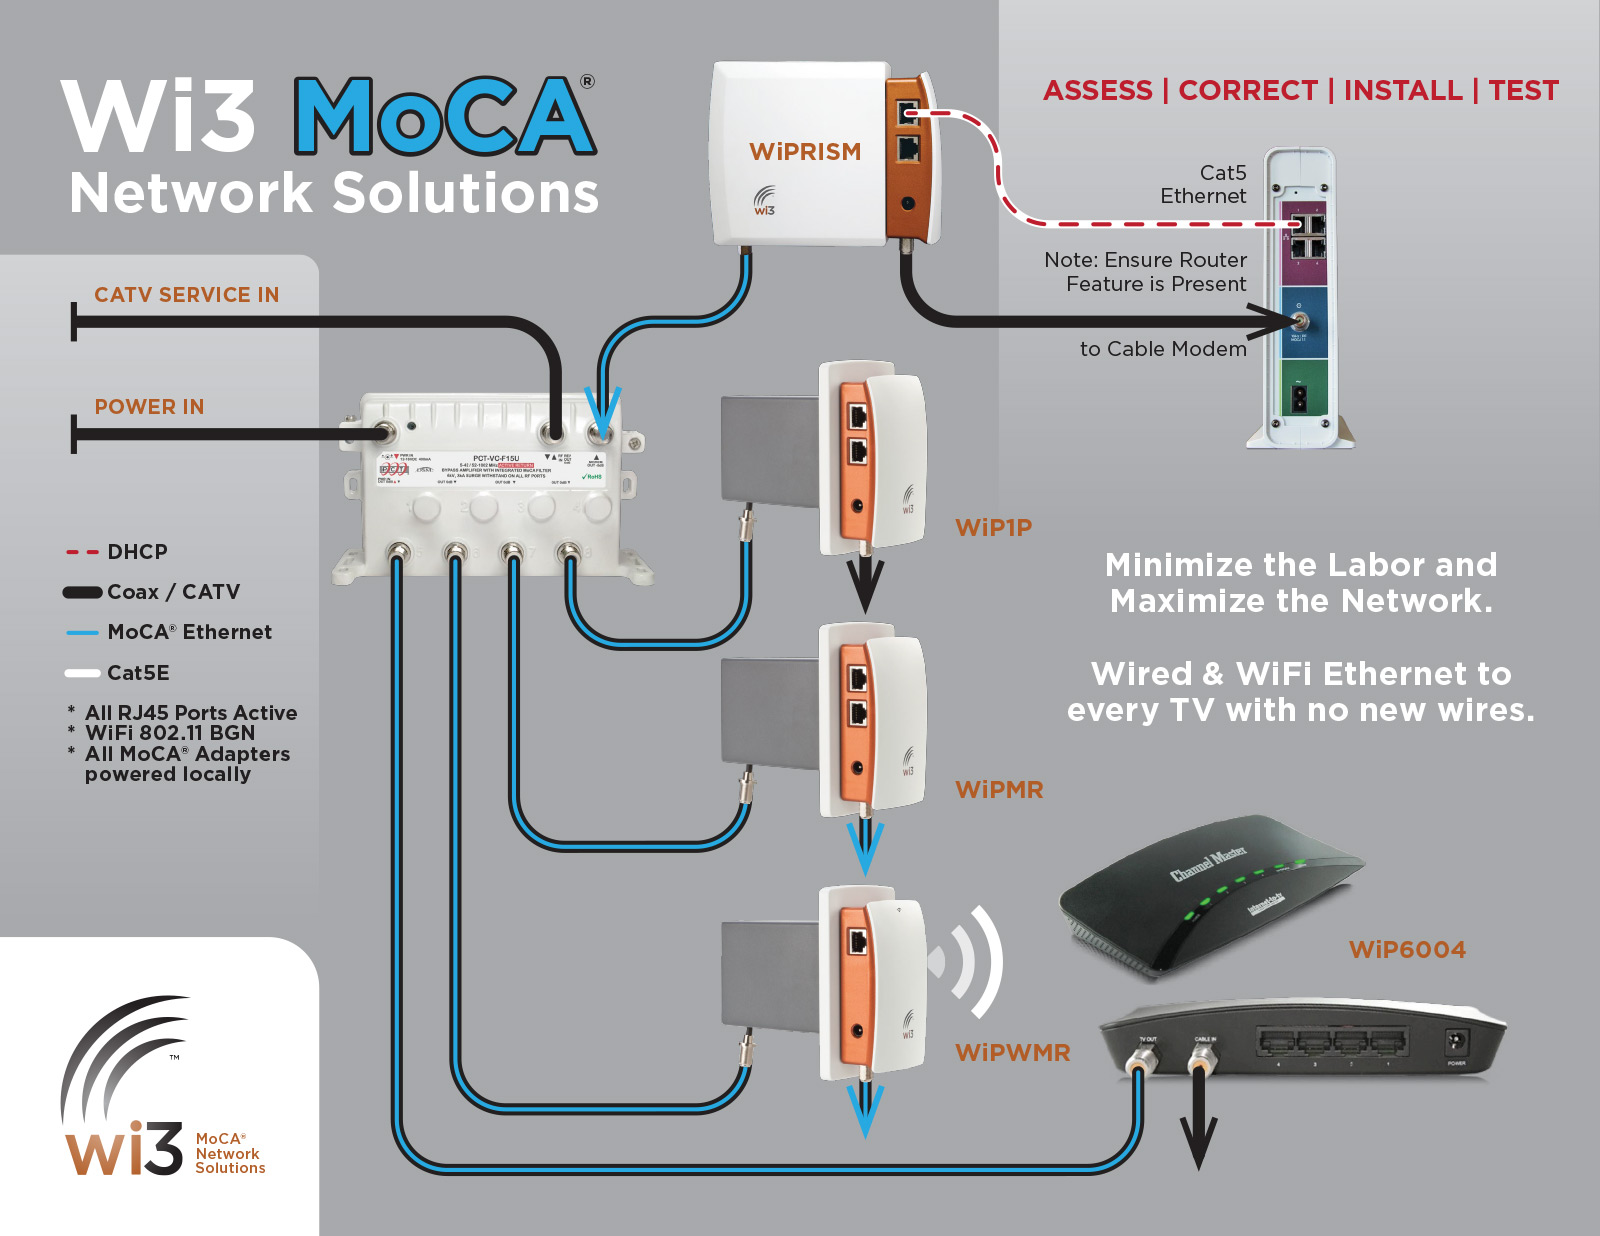 Network Solutions Diagram wi3 moca� network solutions joins home technology specialists of moca network wiring diagram at soozxer.org